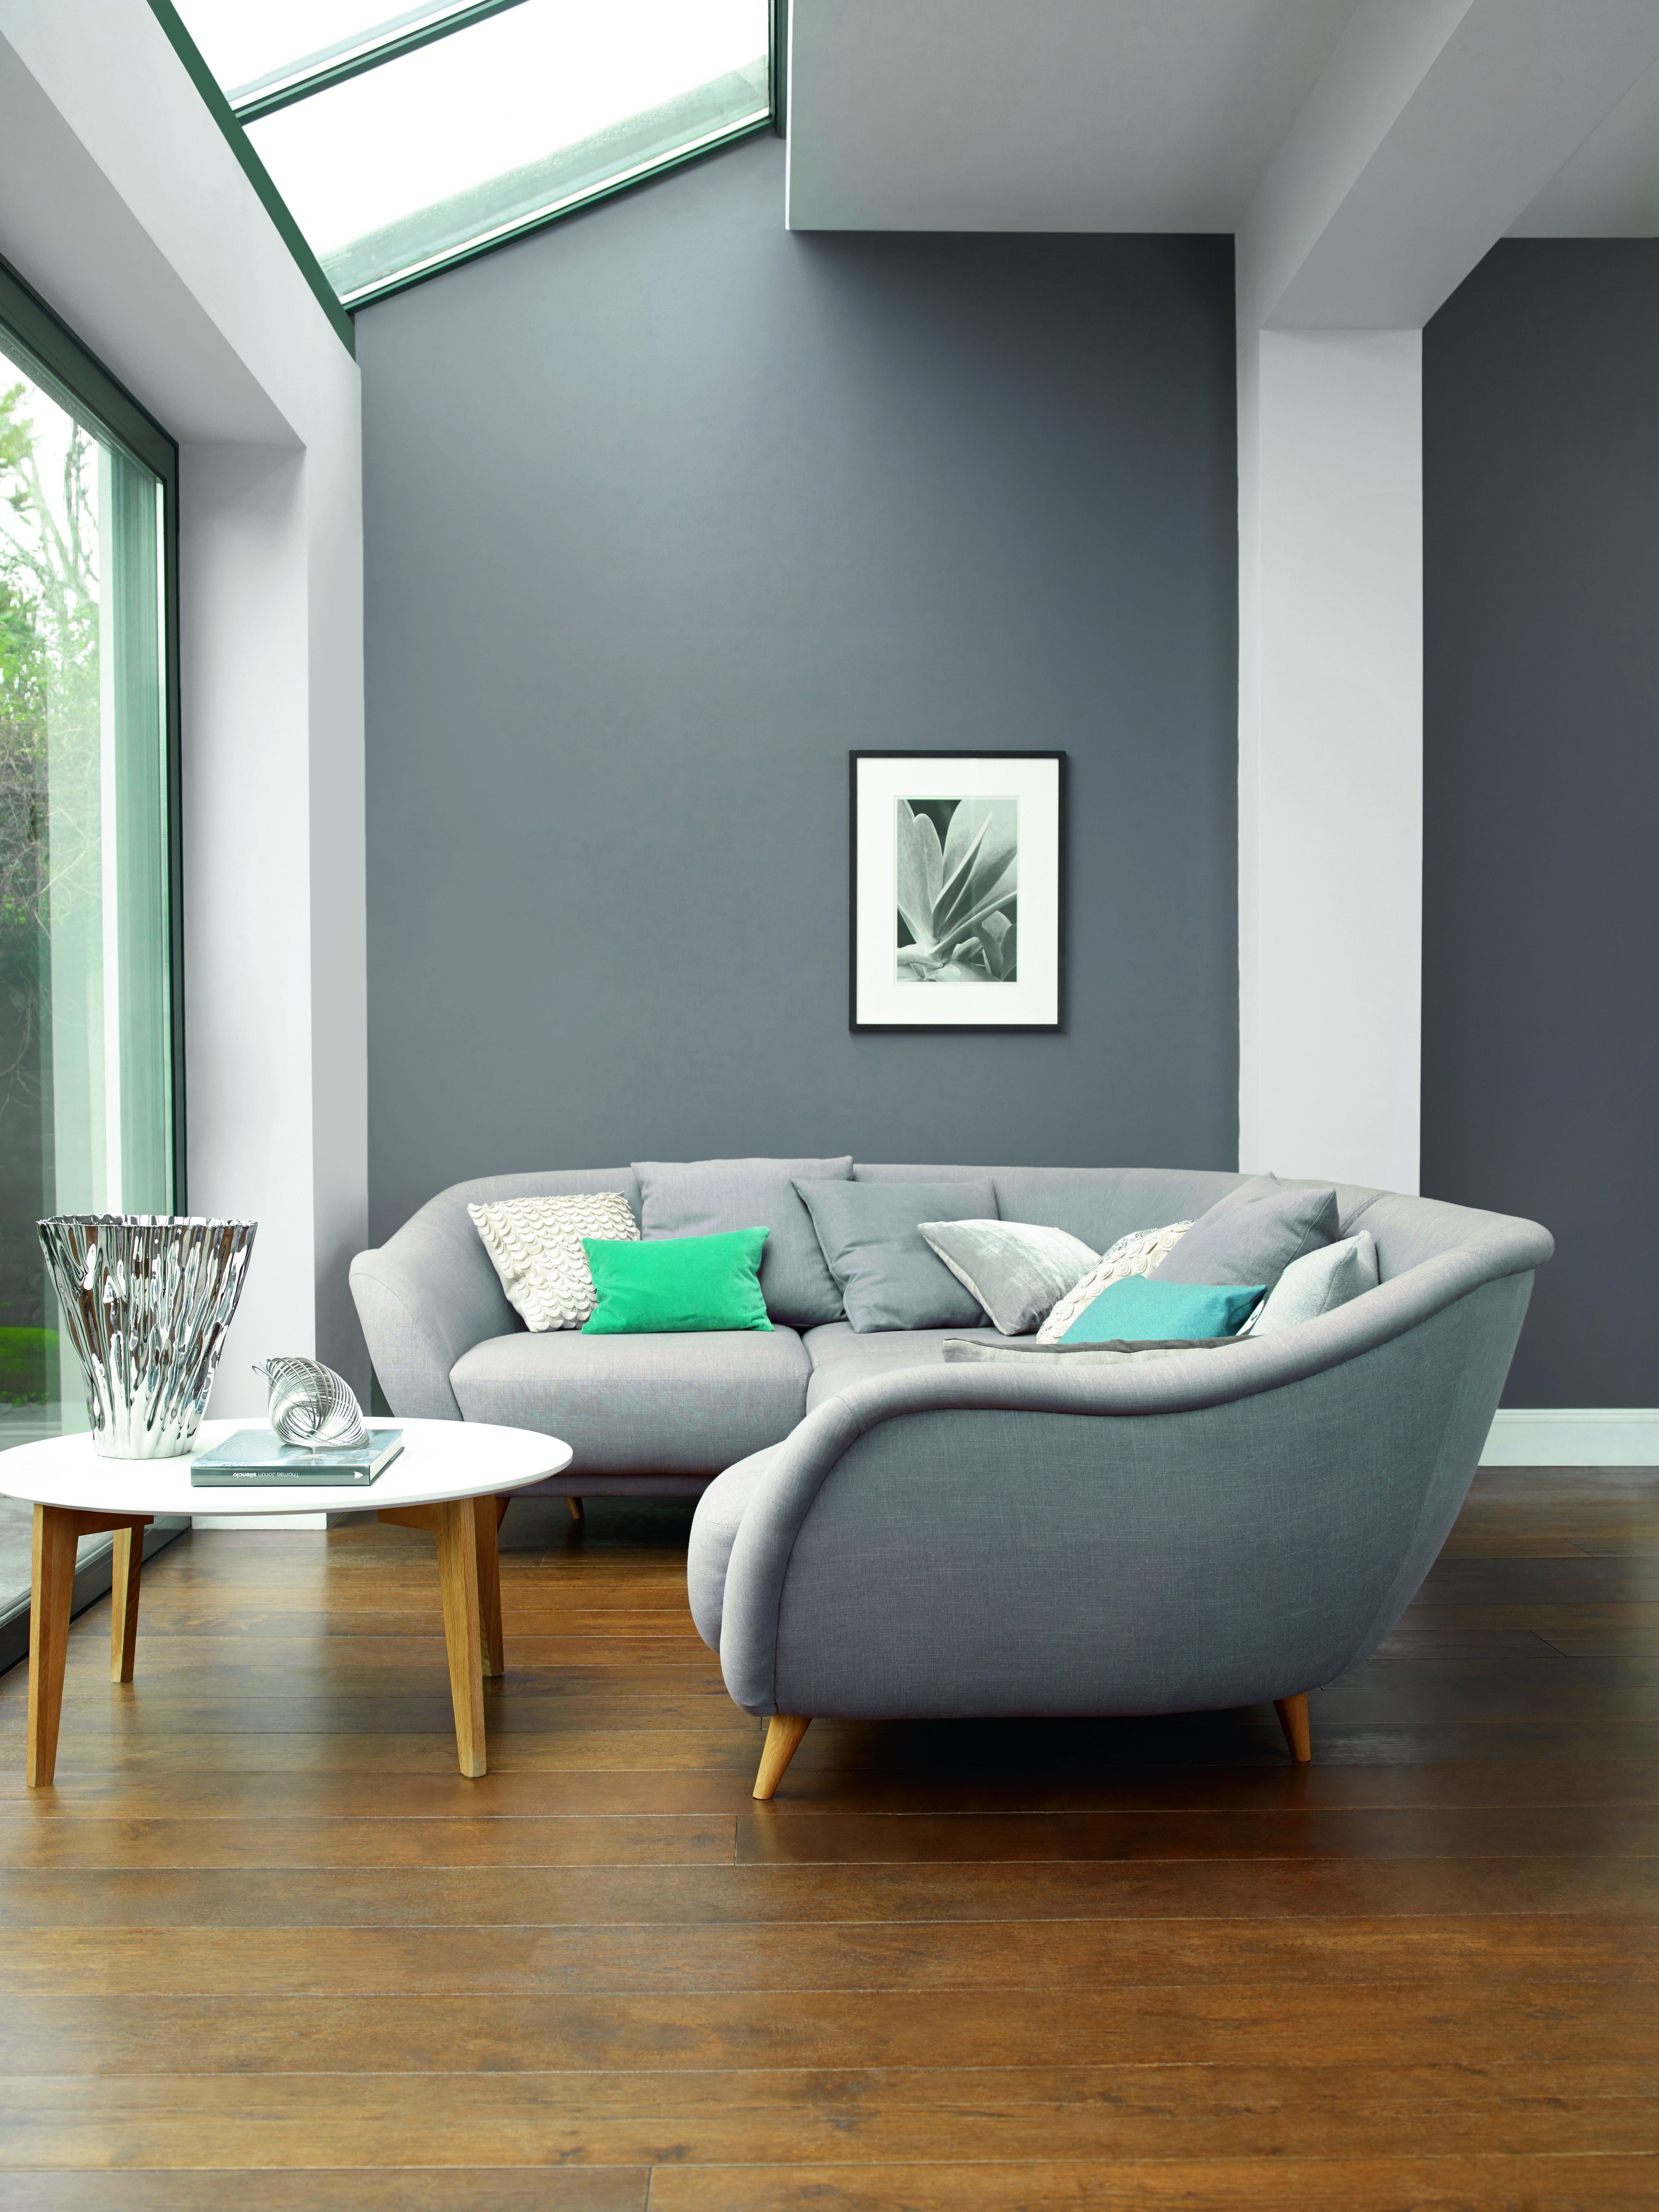 Top 9 Simple Living Room Design Ideas With Beautiful Wall Color Living Room Grey Modern Living Room Paint Living Room Color Top living room colors